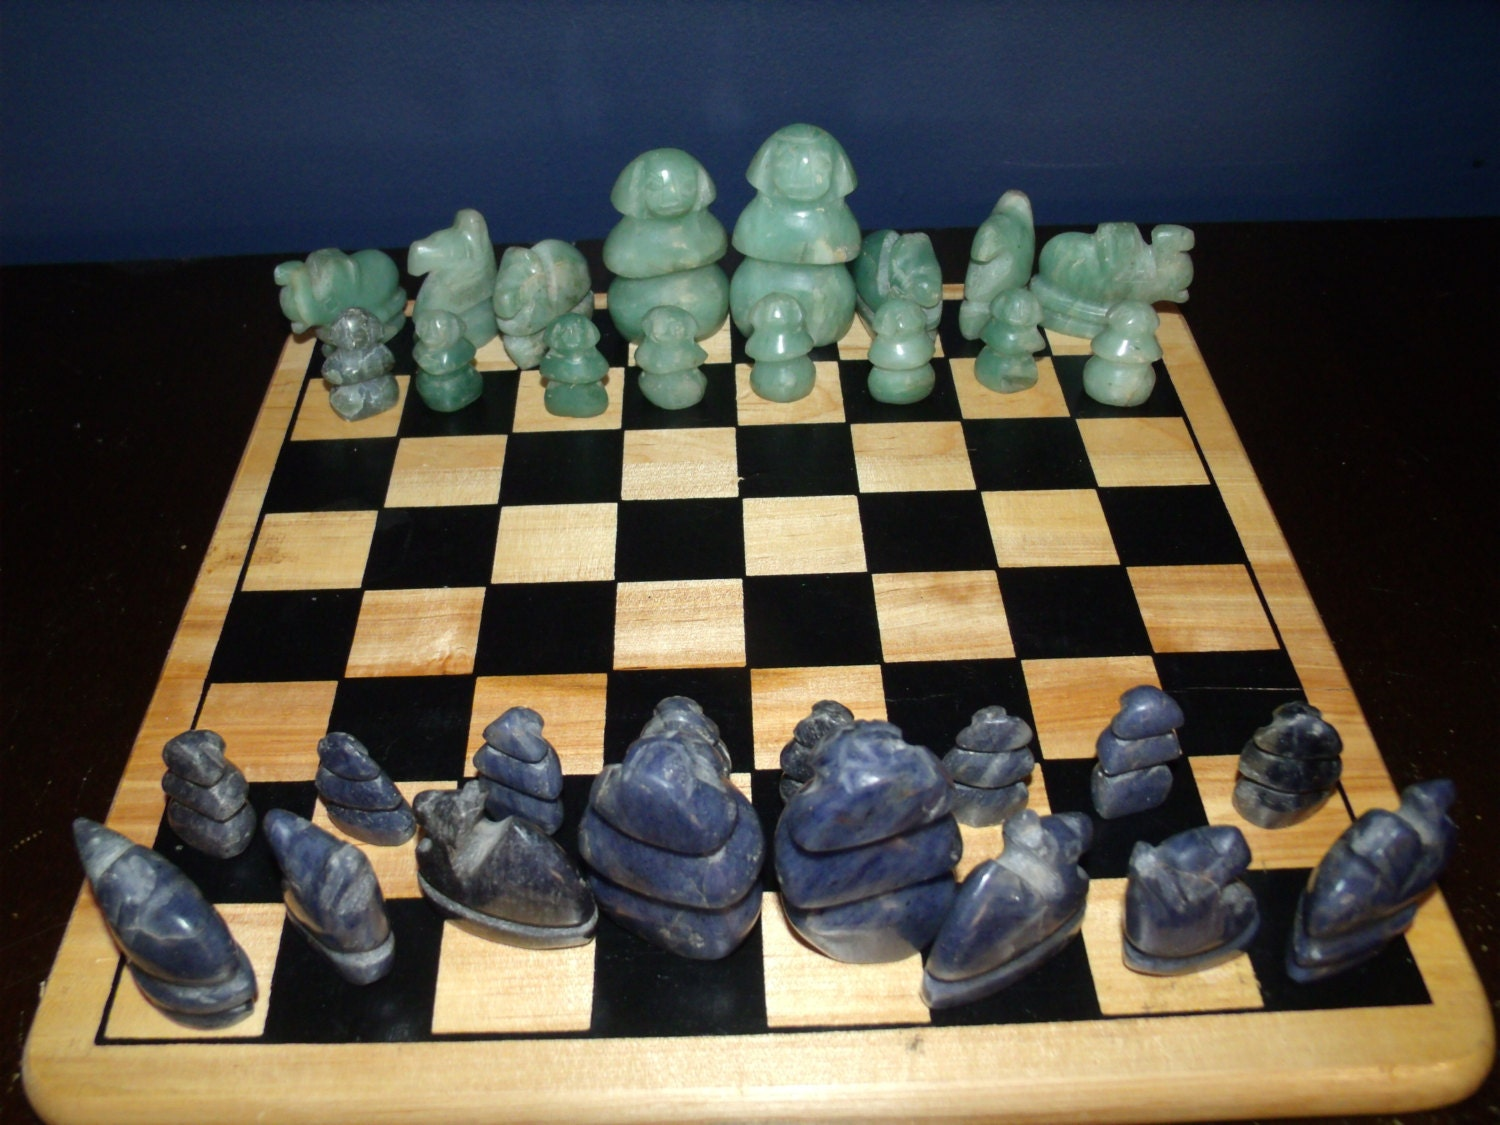 Kitchen dining - Granite chess pieces ...